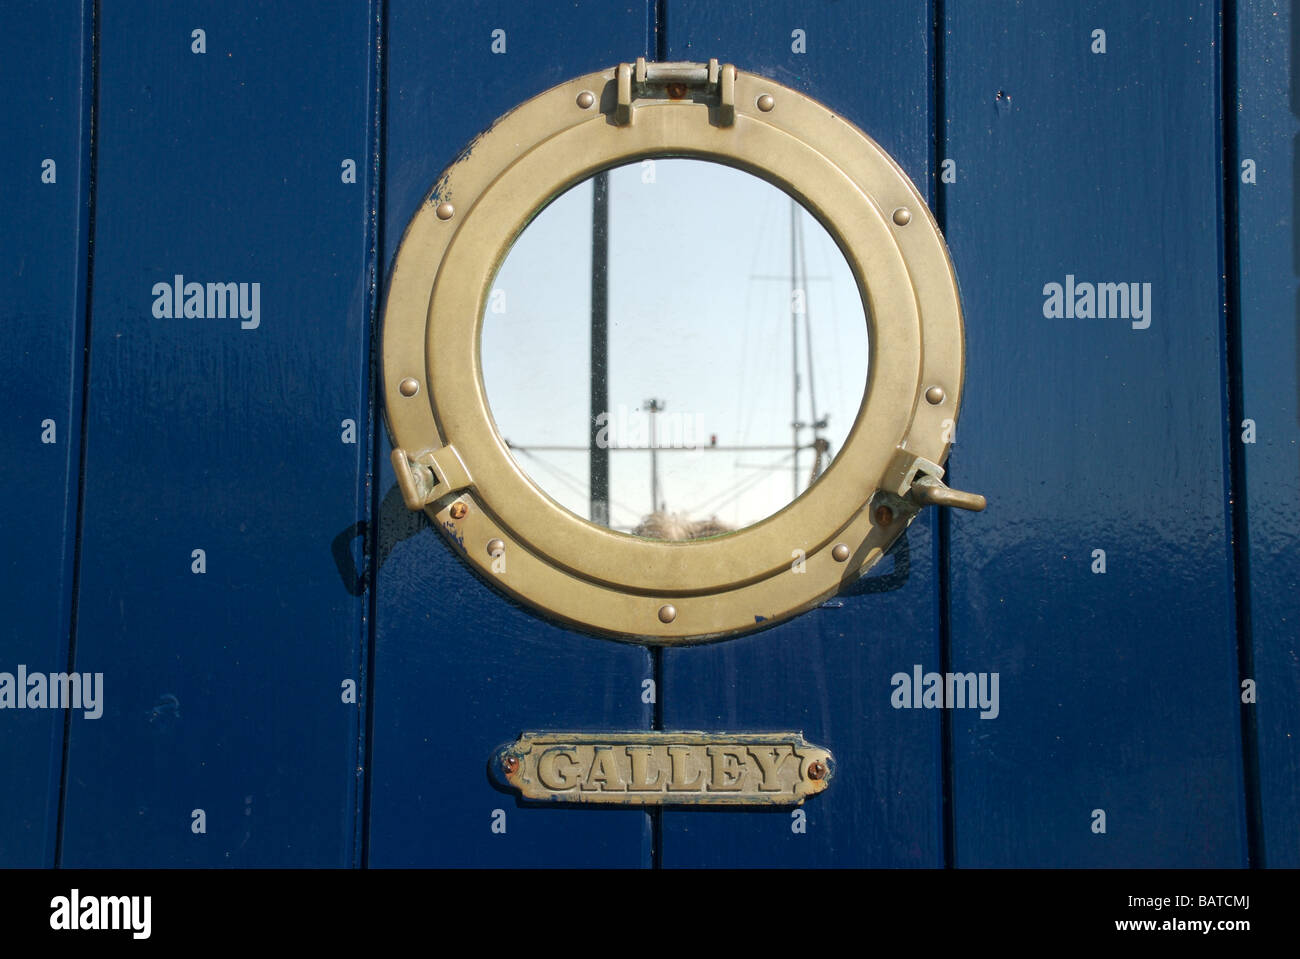 Porthole mirror and Galley sign on door Barbican Plymouth Devon UK & Porthole mirror and Galley sign on door Barbican Plymouth Devon ...